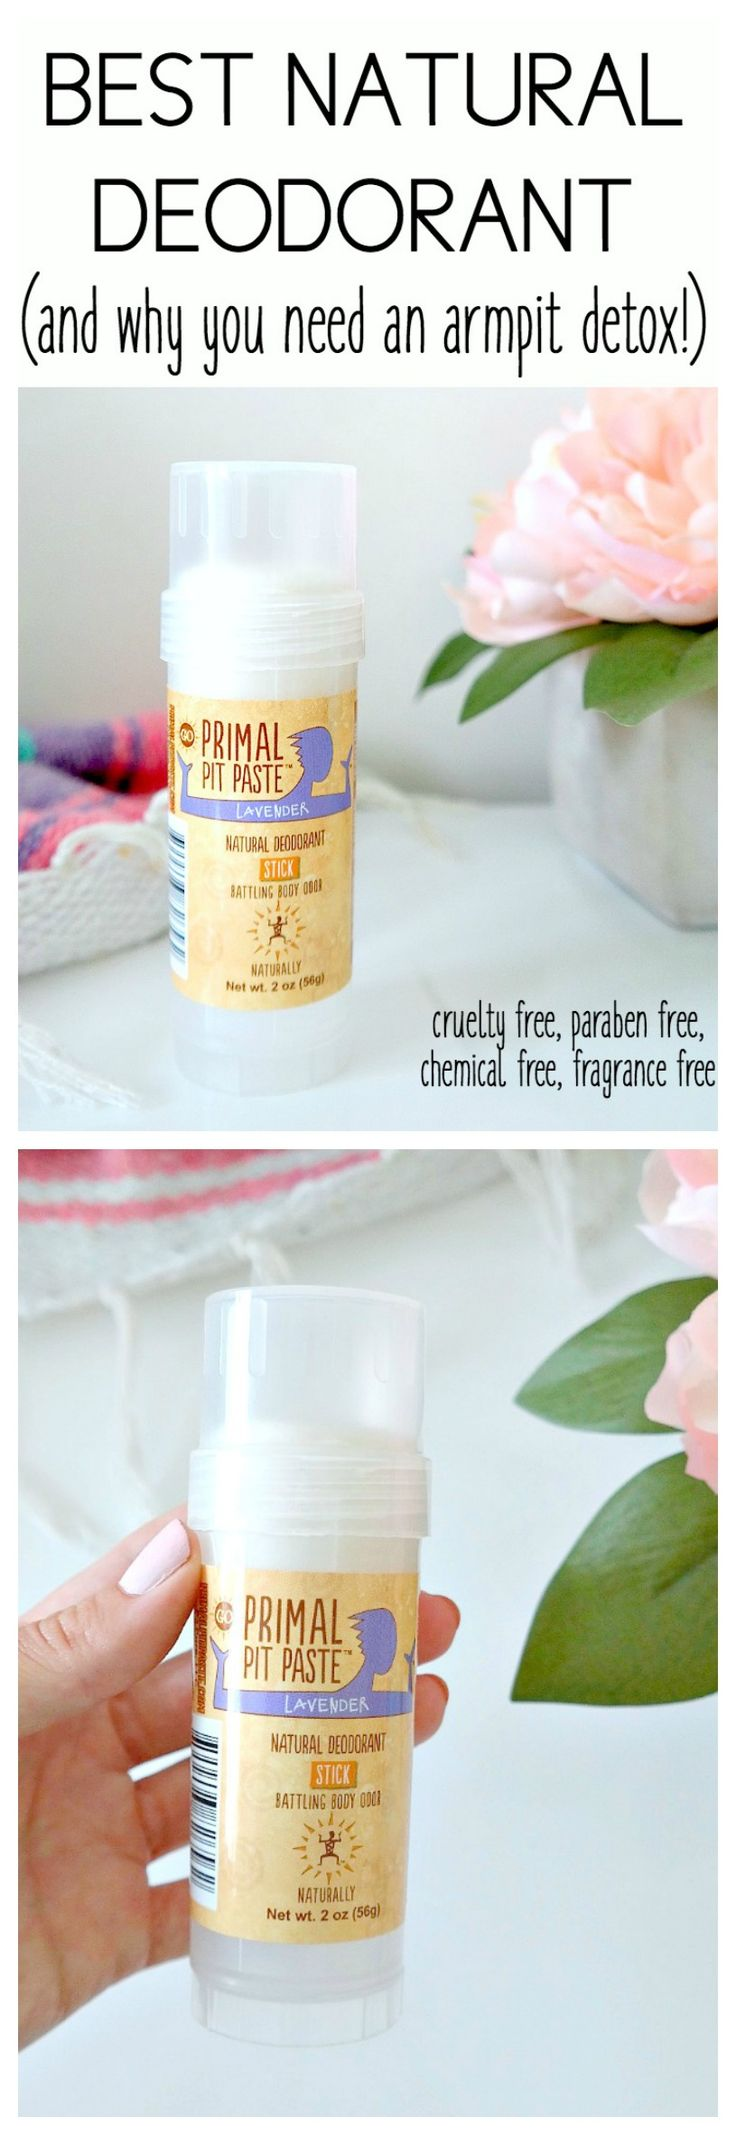 The BEST All-Natural, Cruelty-Free, Aluminum-Free Vegan Deodorant (and why you NEED to do an armpit detox!) PLUS, how and why you should switch from conventional to natural! From The Glowing Fridge